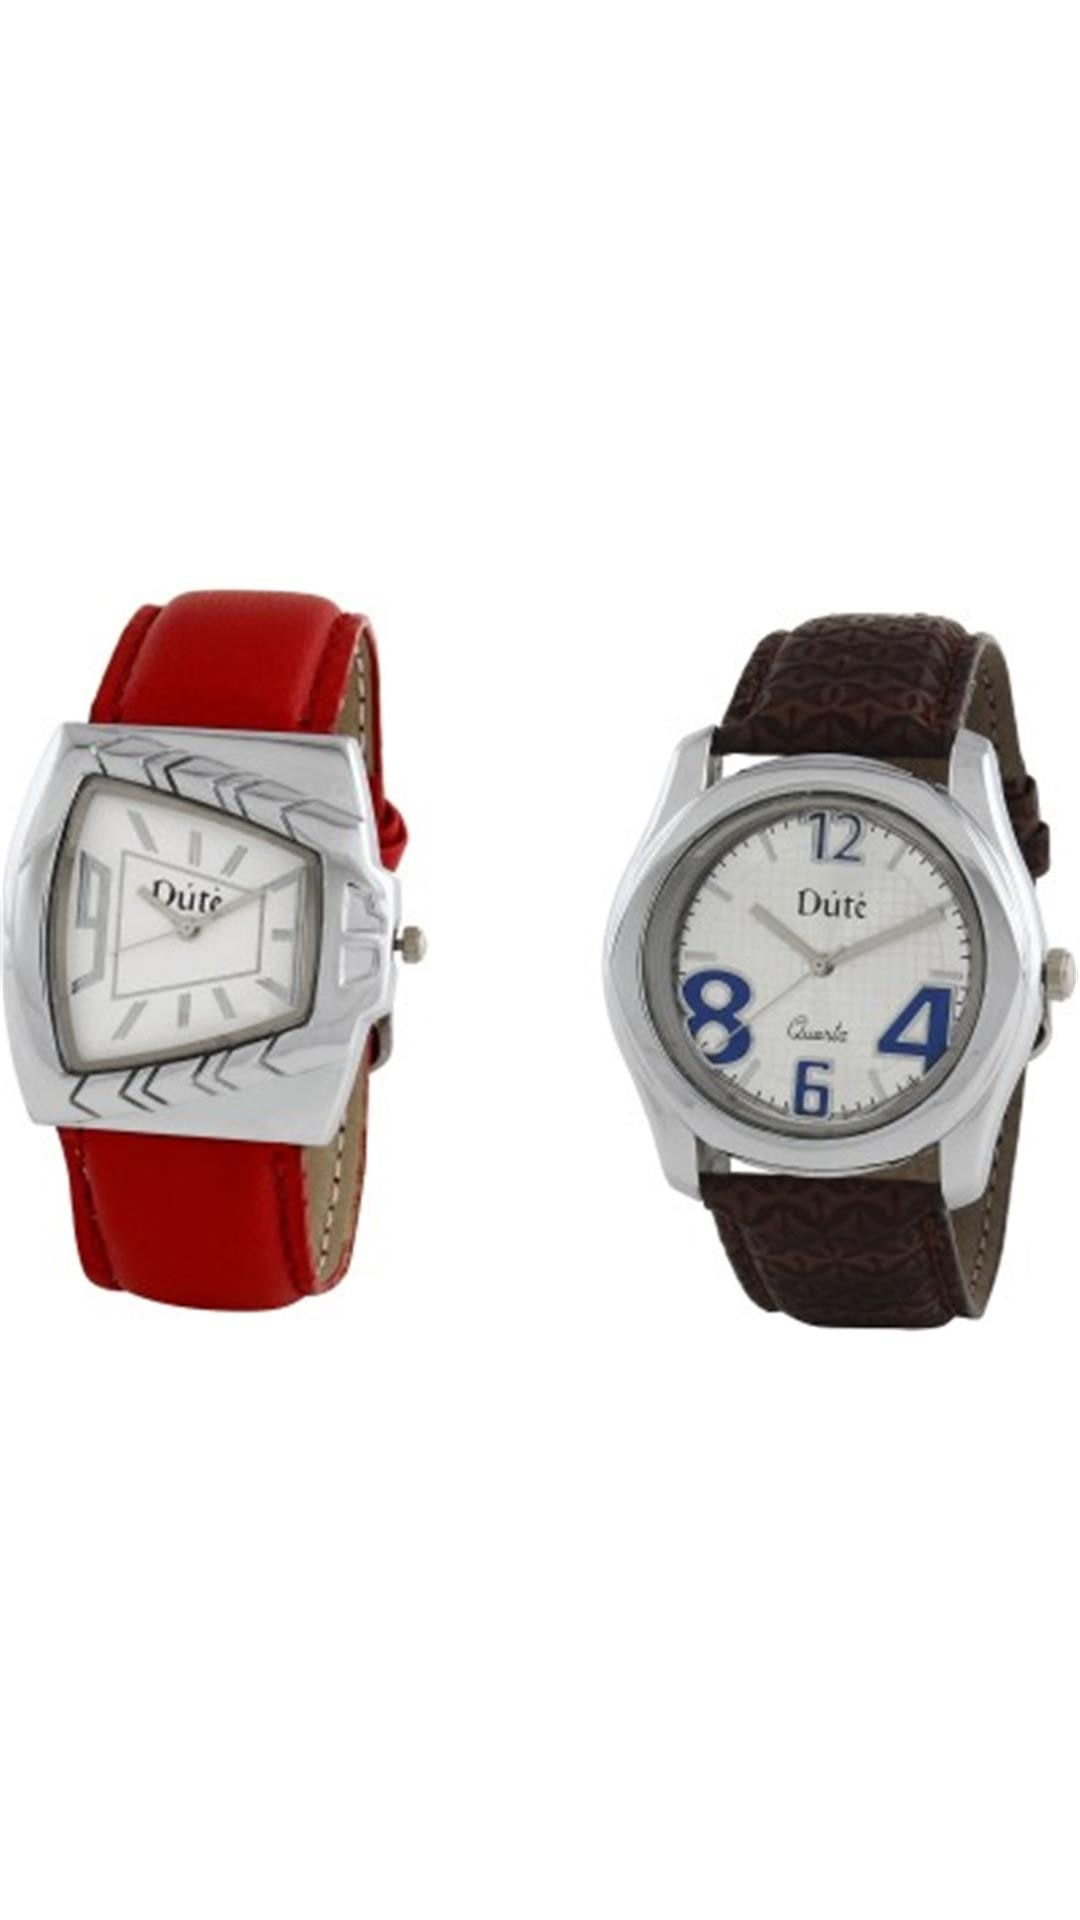 Dute DU0026 Analog Watch For Couple